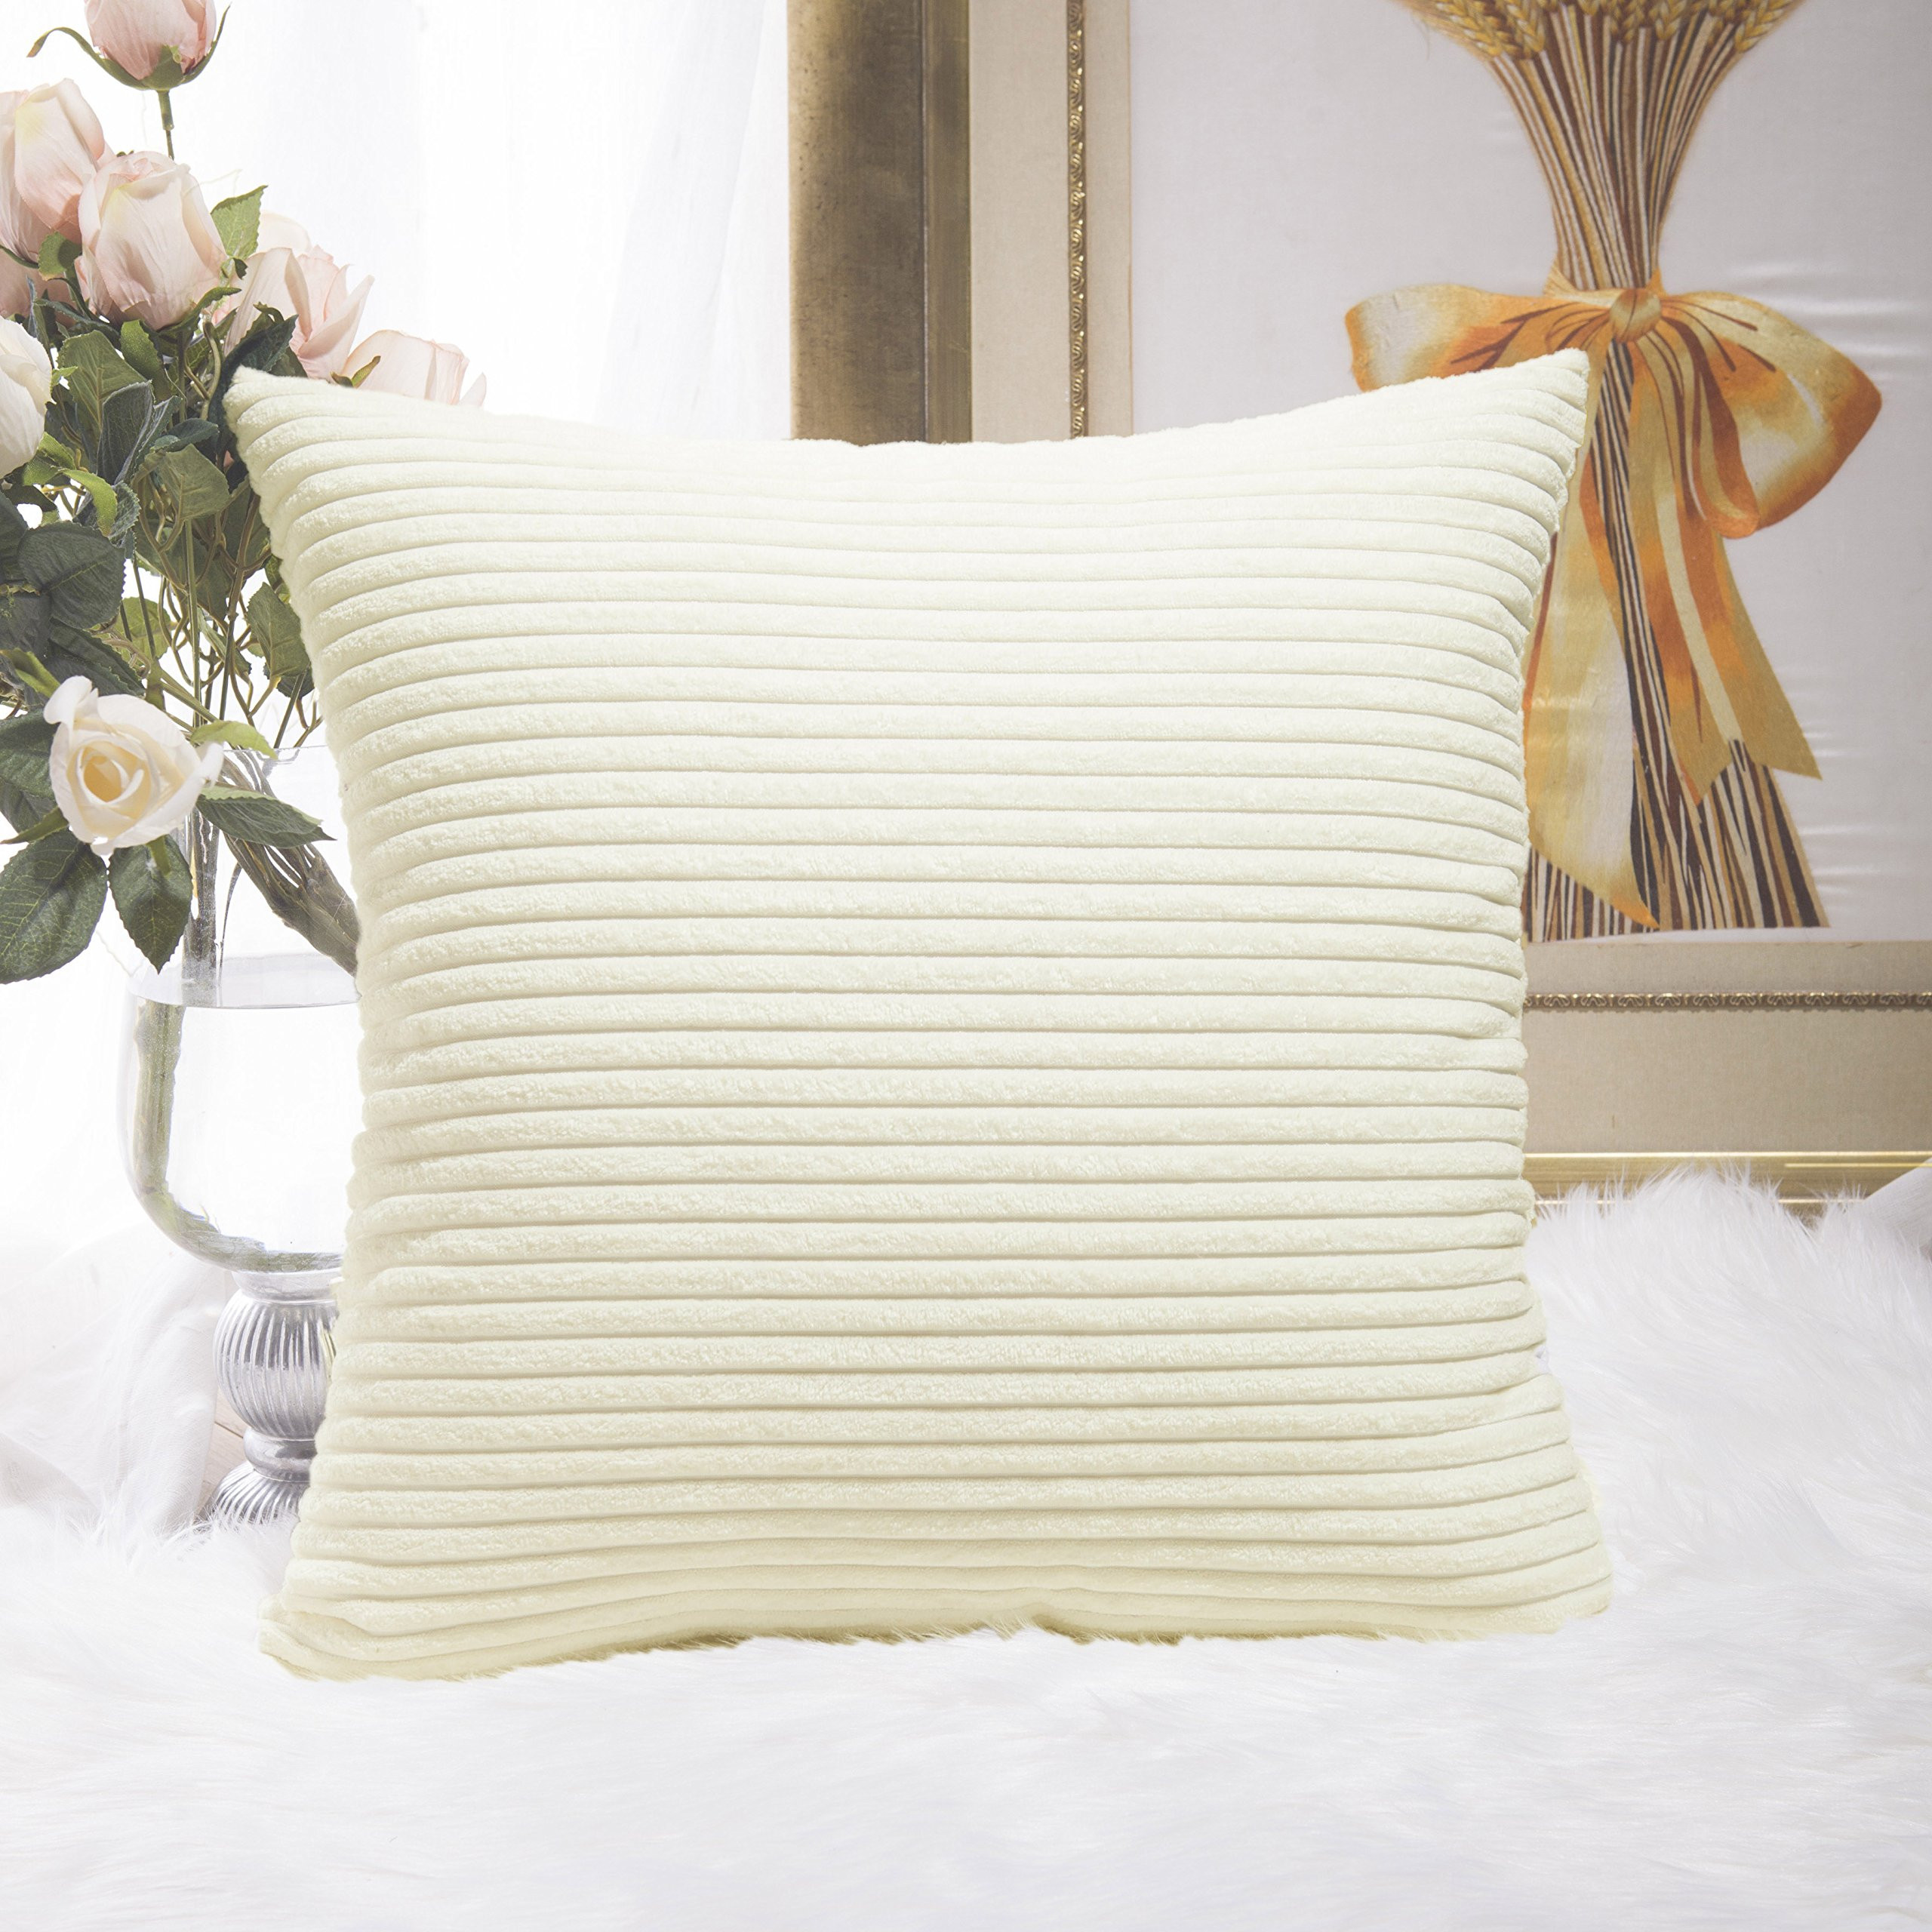 HOME BRILLIANT Striped Corduroy Euro Throw Pillow Sham Couch Cushion Cover for Teen Girls, 24 x 24 inch (60cm), Creamy White